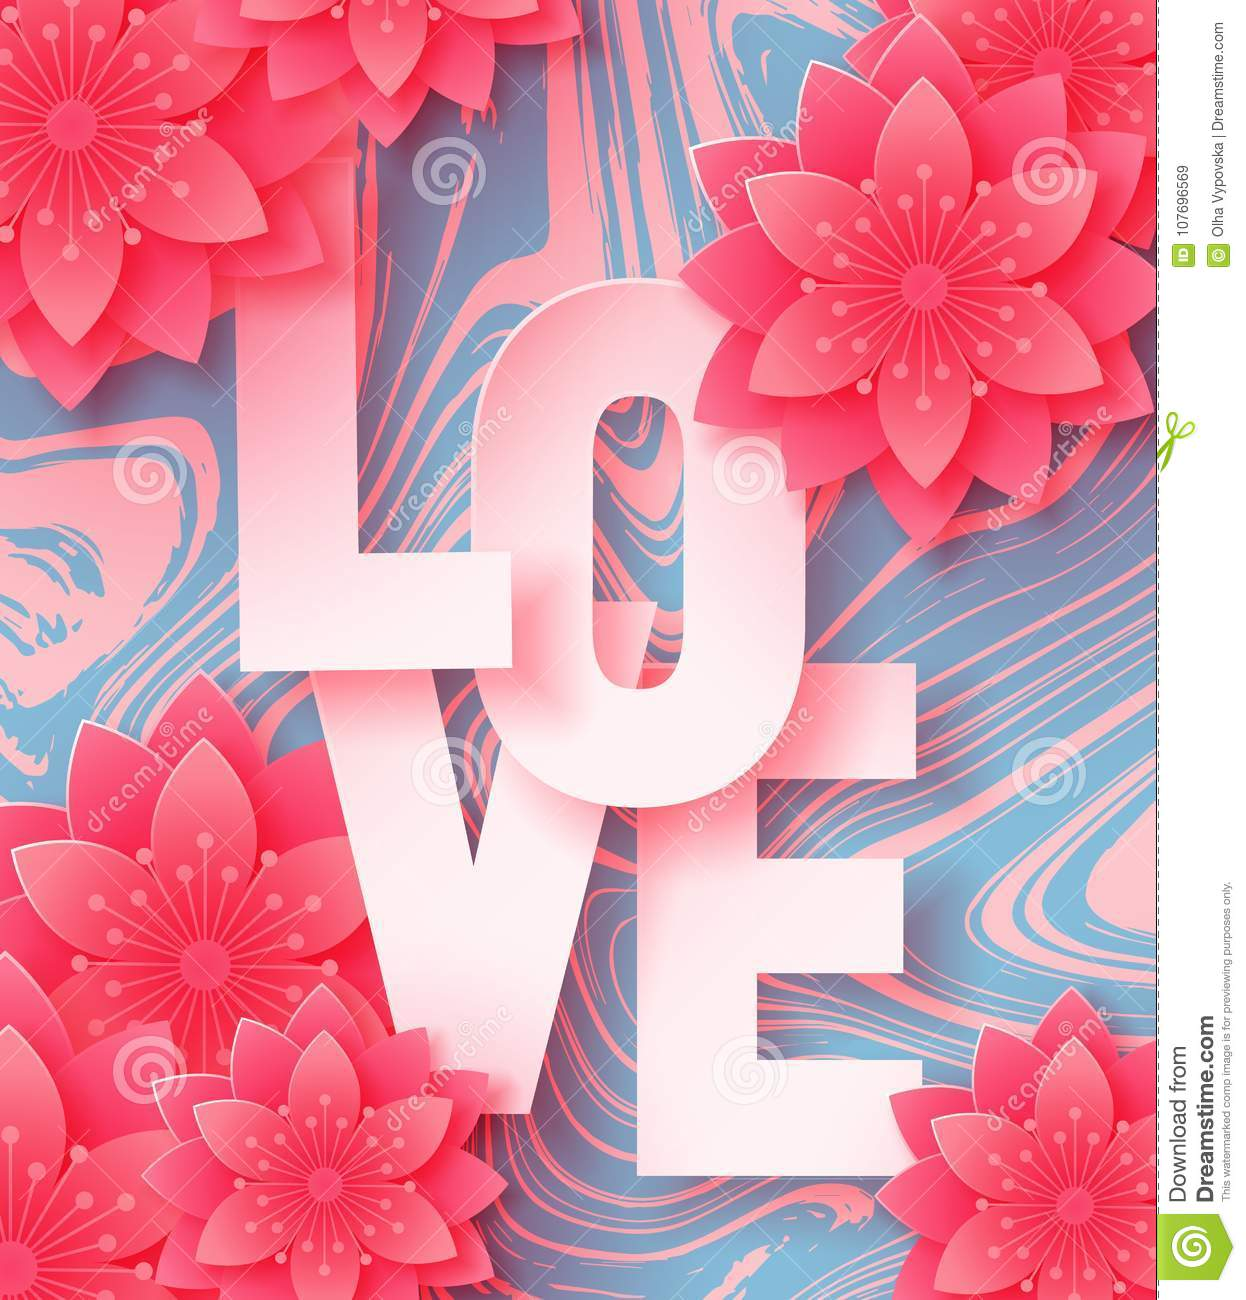 3d abstract paper cut illustration of love letters and paper art pink flowers on marble background.